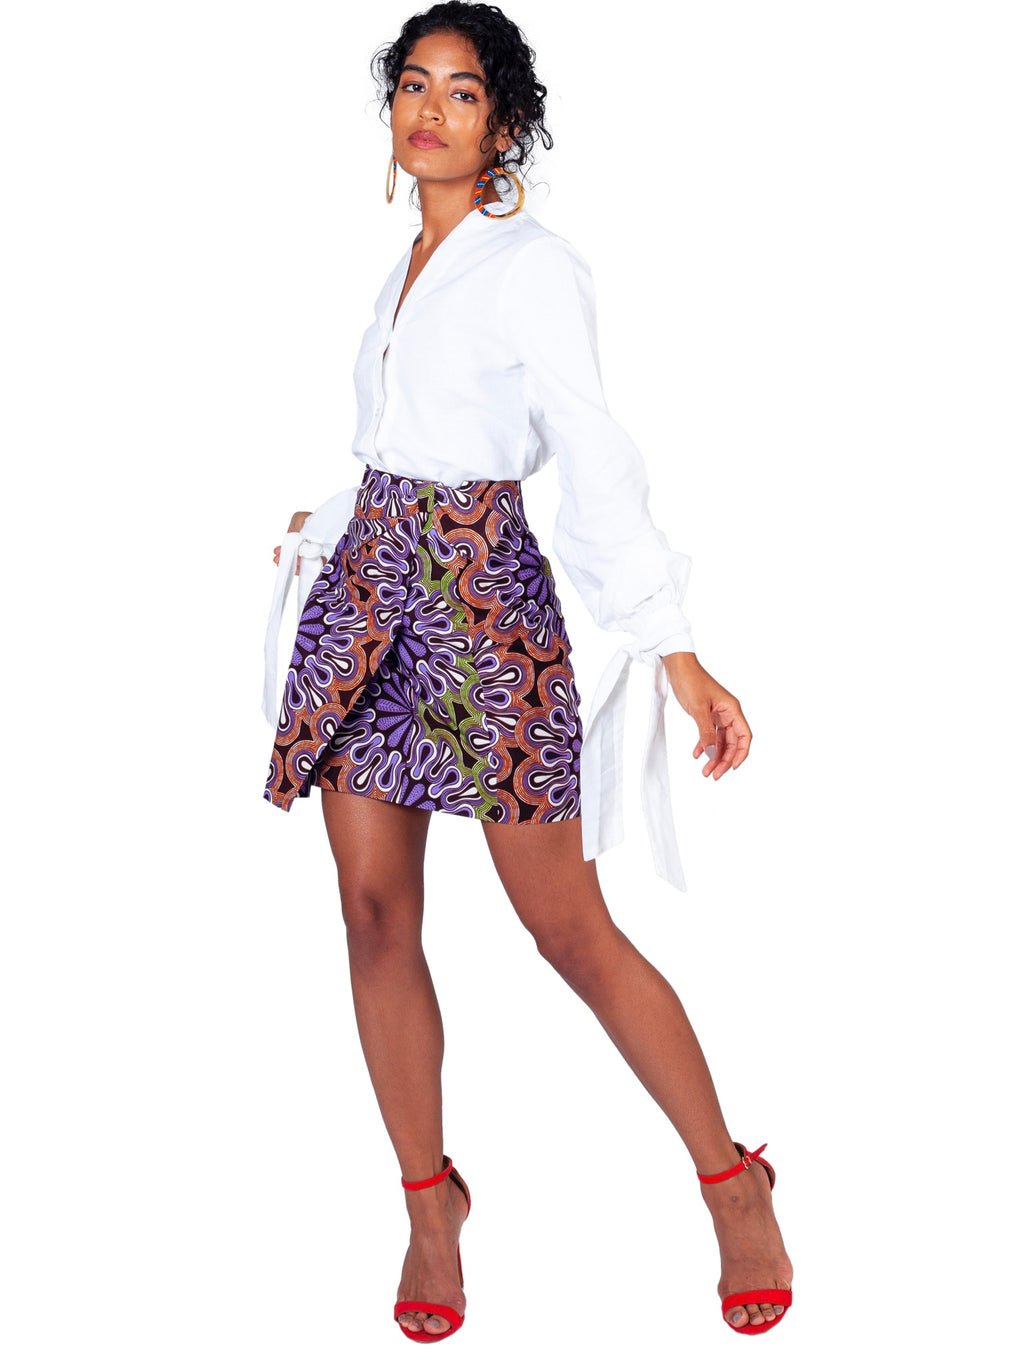 Half Moon Bay Mini Skirt - Chen Burkett New York